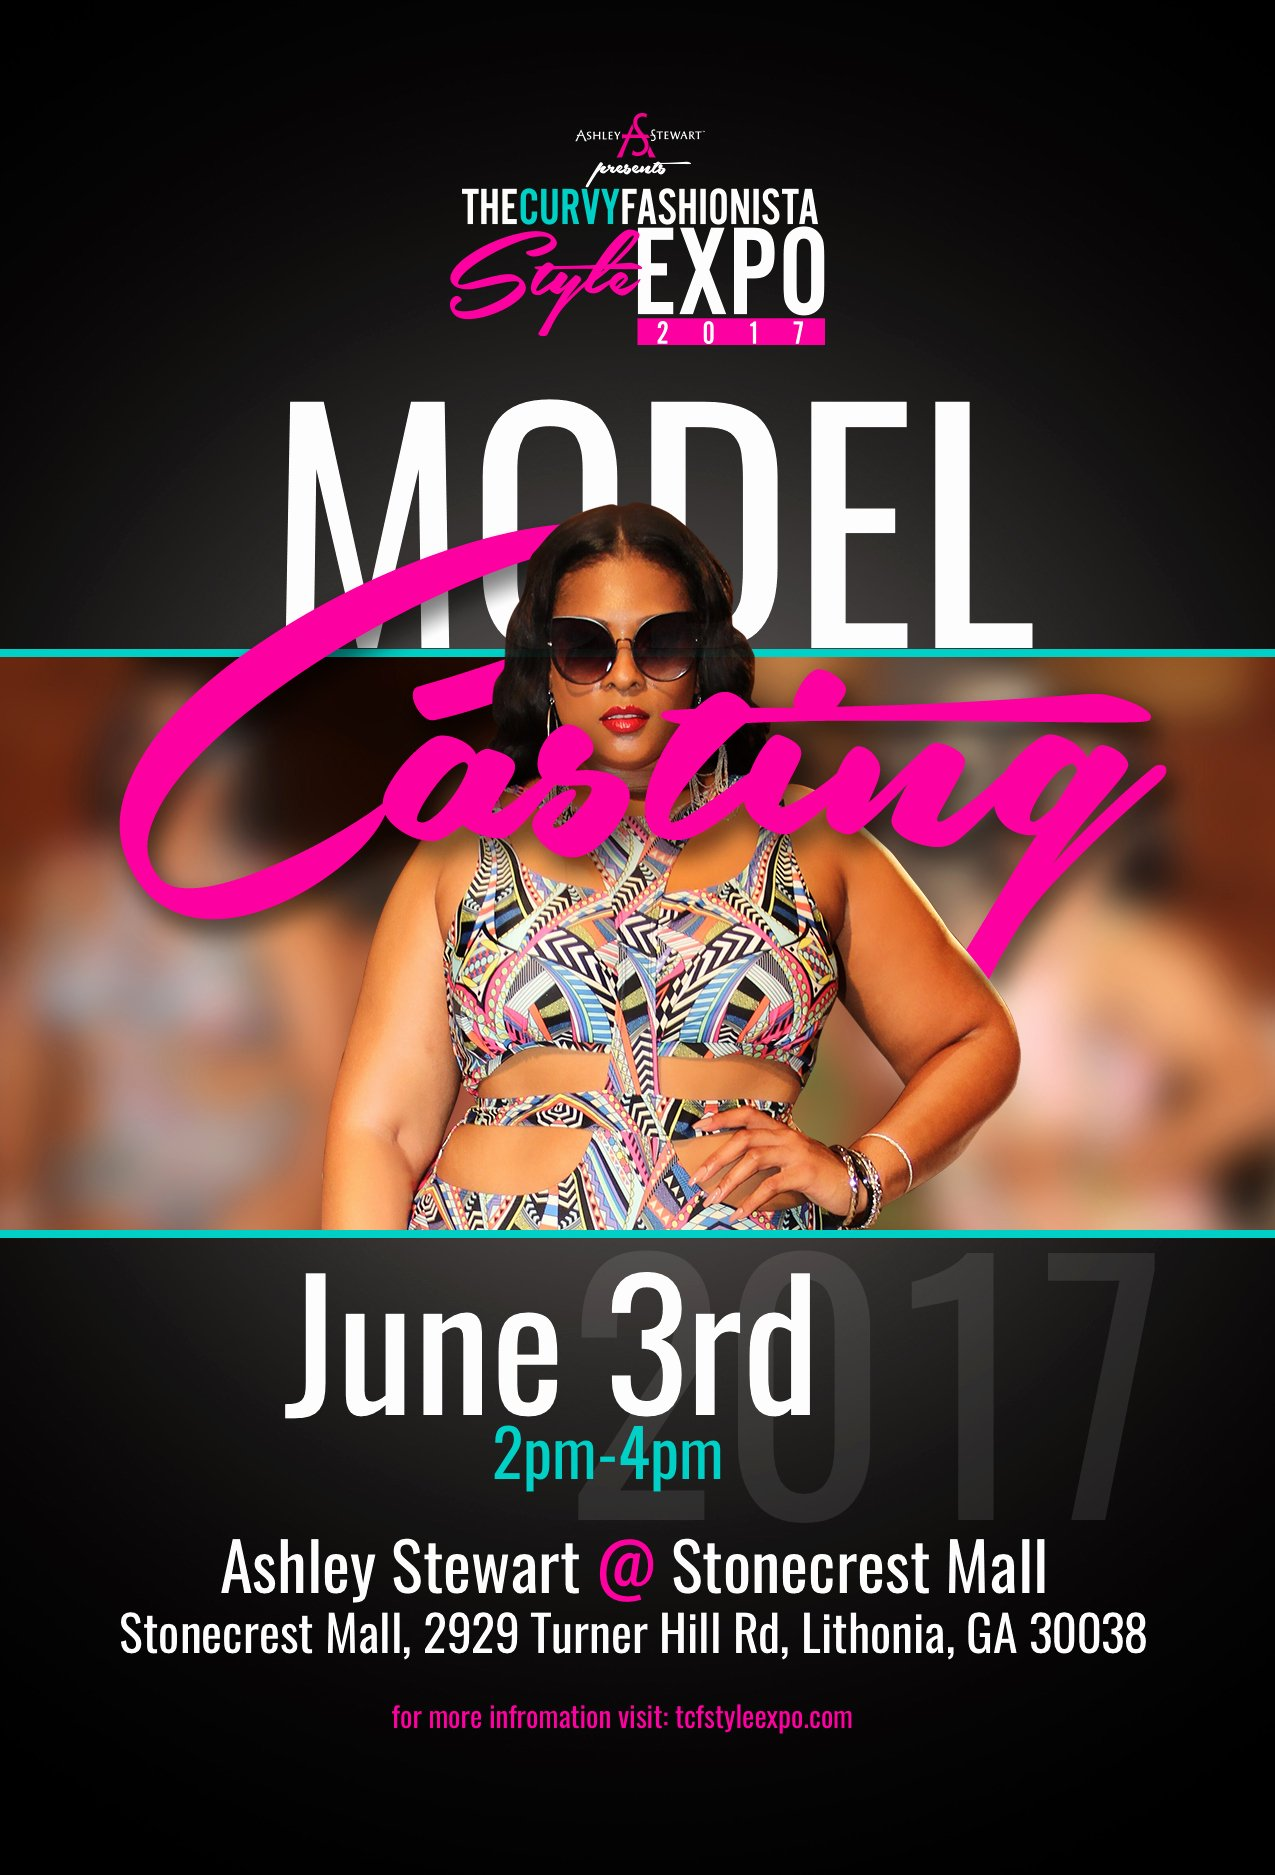 Casting Call Flyer Template Fresh Want to Be A Model E to the Tcfstyle Expo Model